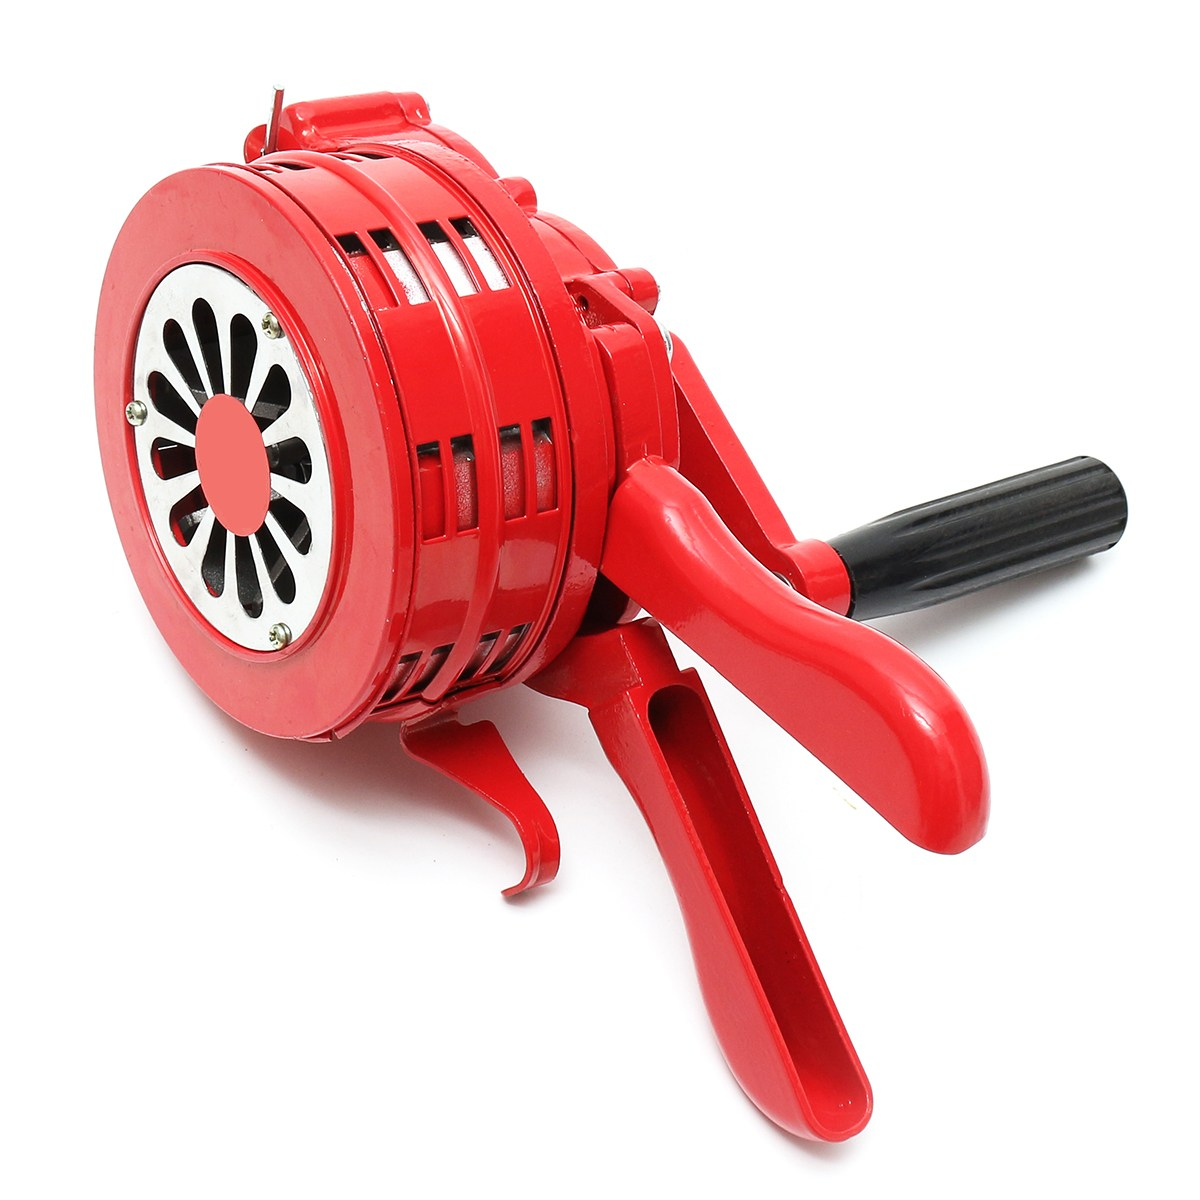 NEW 4.5 Red Aluminium Alloy Handheld Manual Operated Security Alarm Air Raid Siren Portable Safety<br>